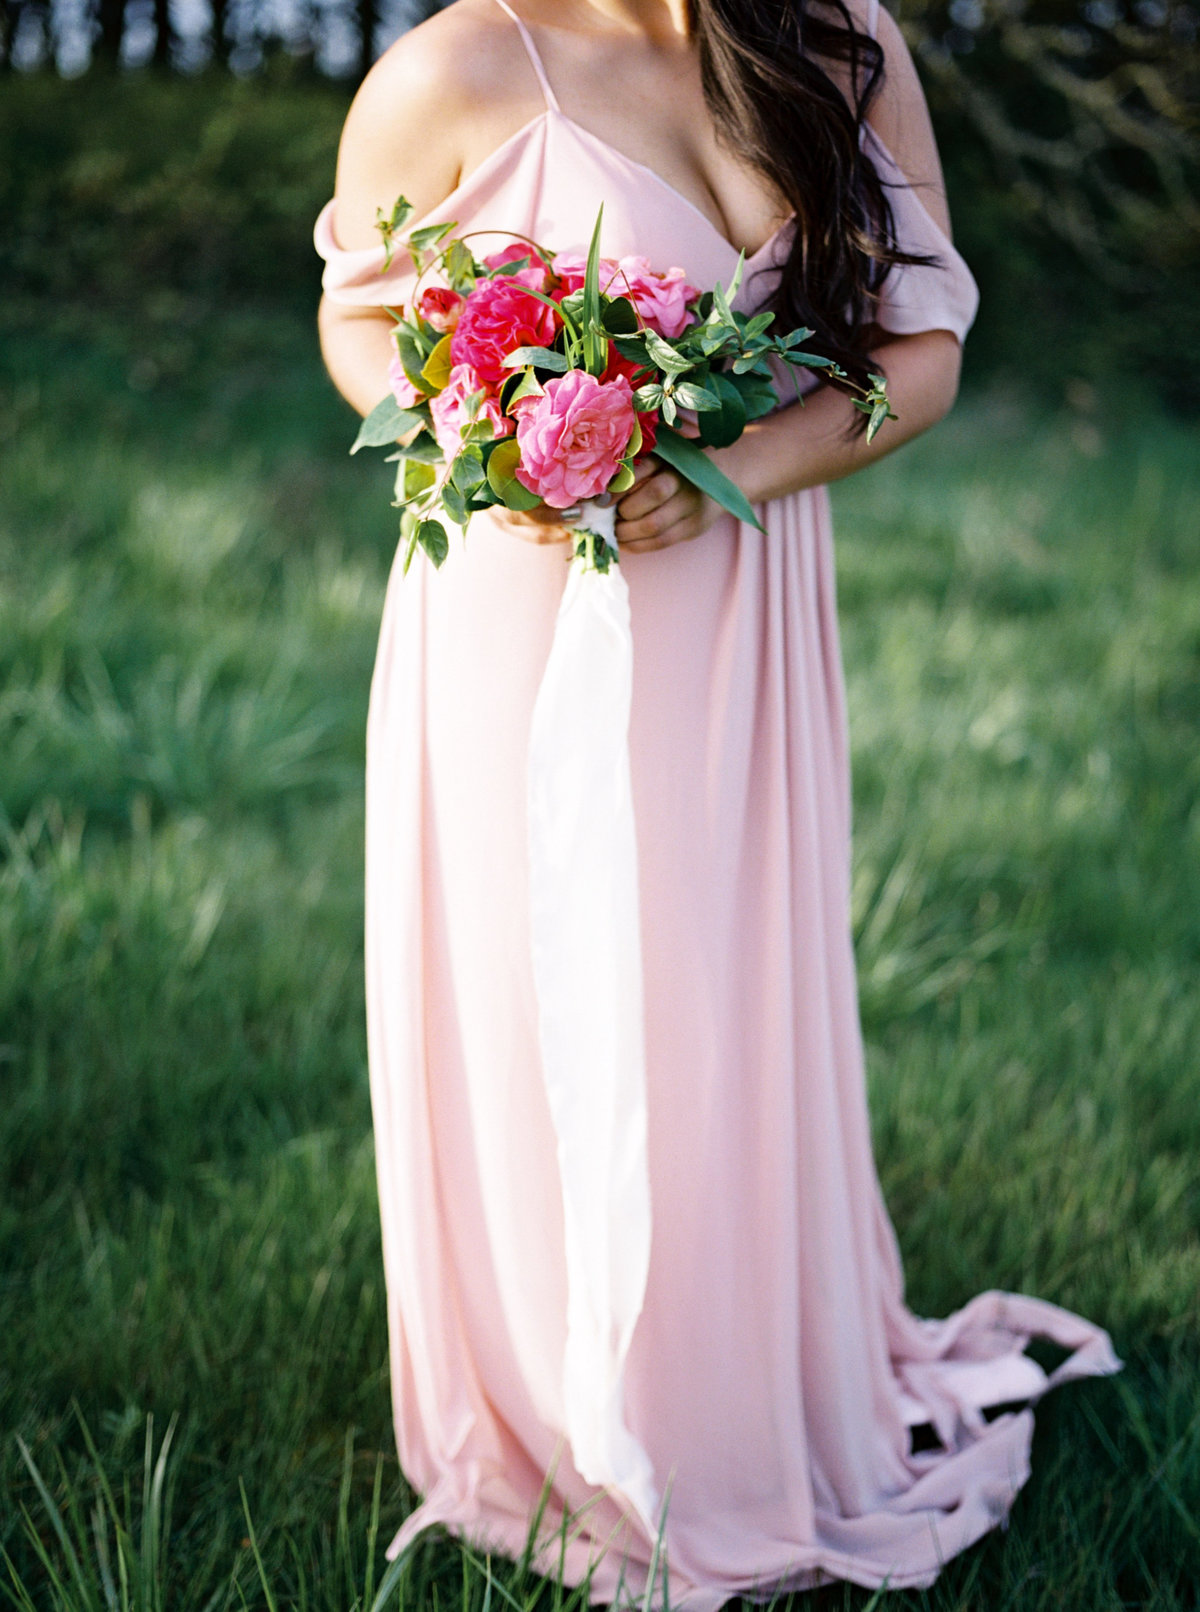 WHEN-SHE-KNEW-PHOTOGRAPHY-ADORN-MAGAZINE-ETHEREAL-BRIDAL-WEDDING-EDITORIAL-OREGON-31